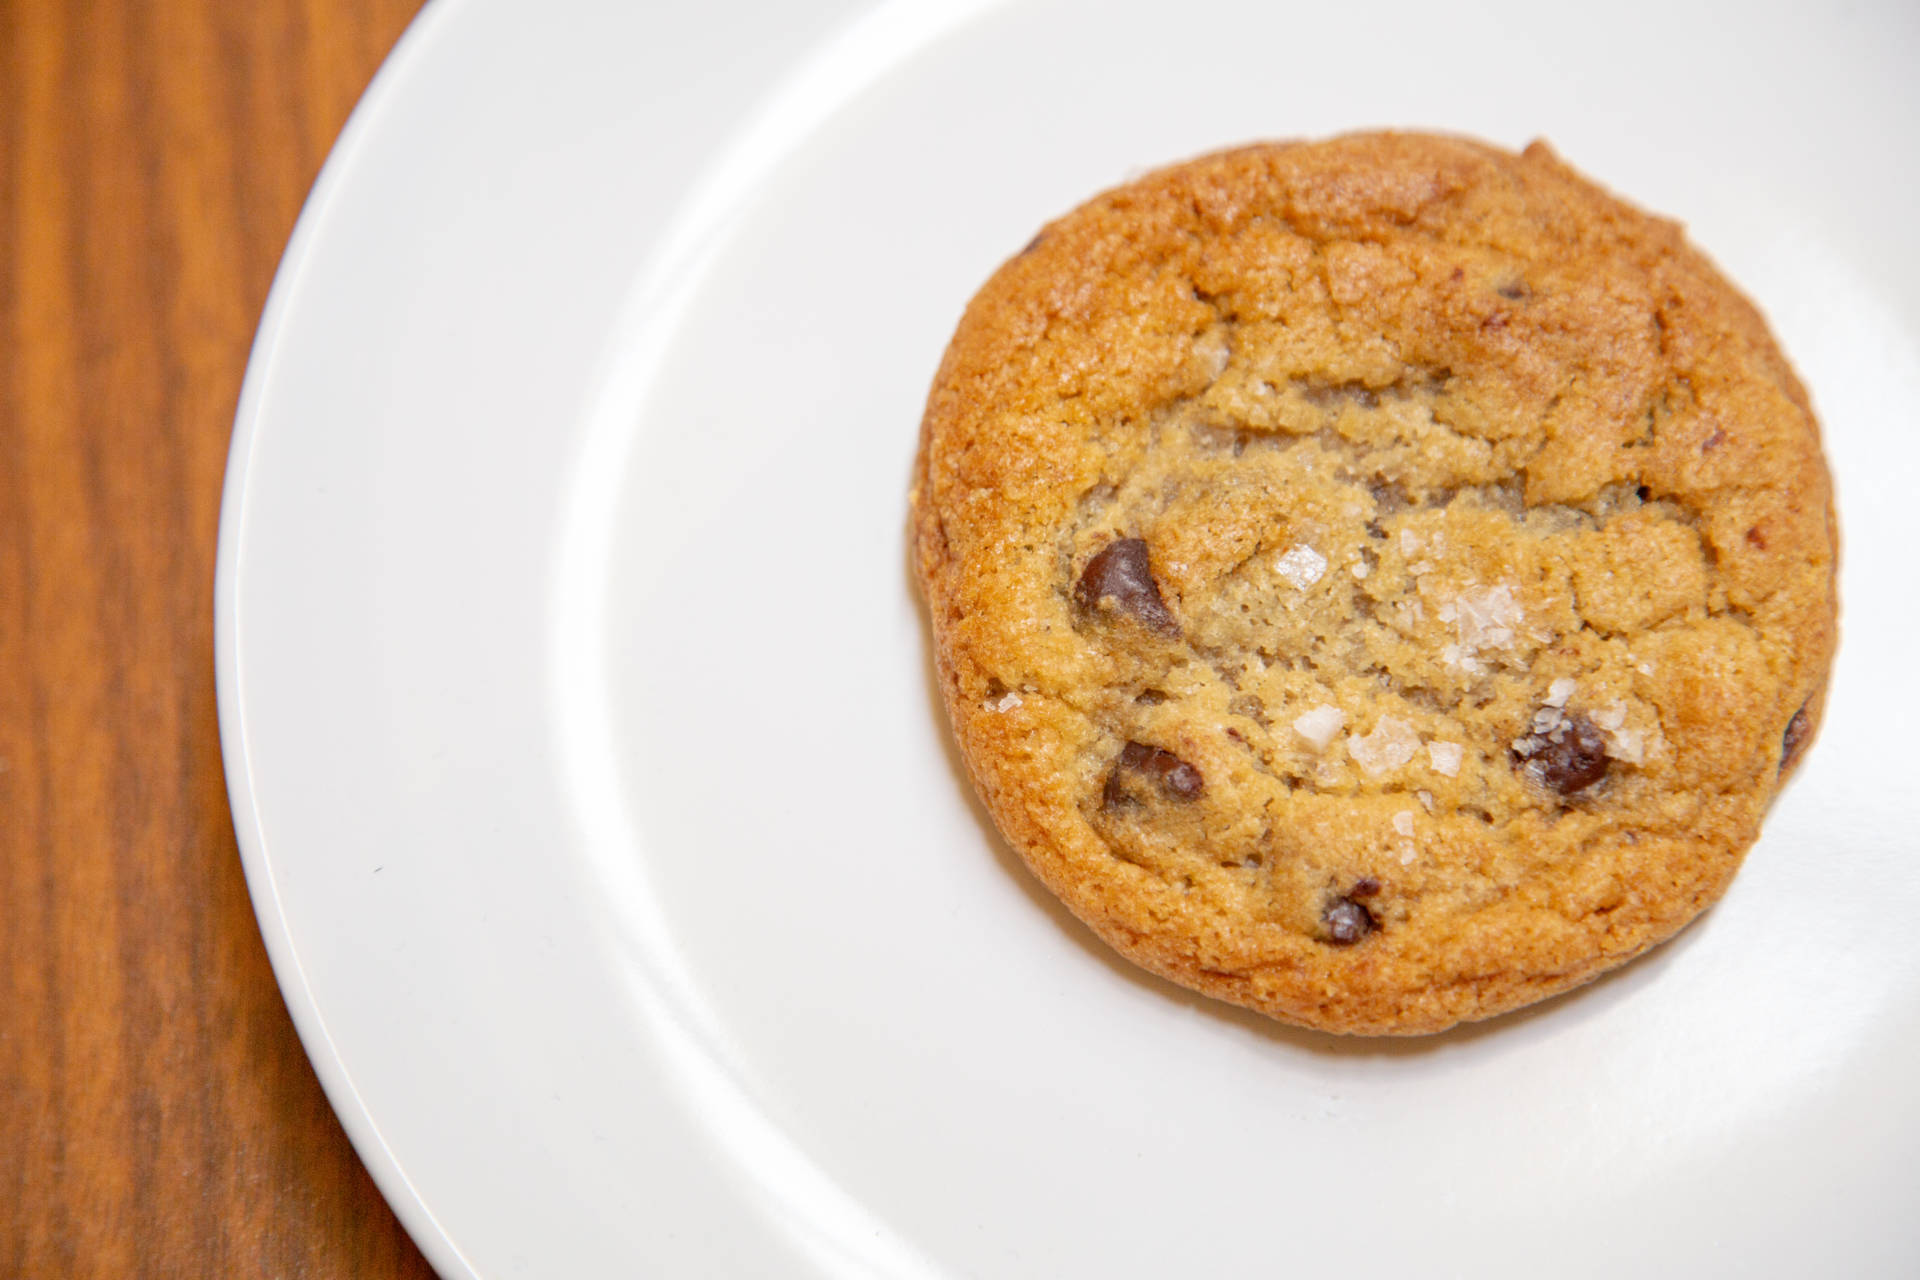 Chocolate chip cookie from Andytown.